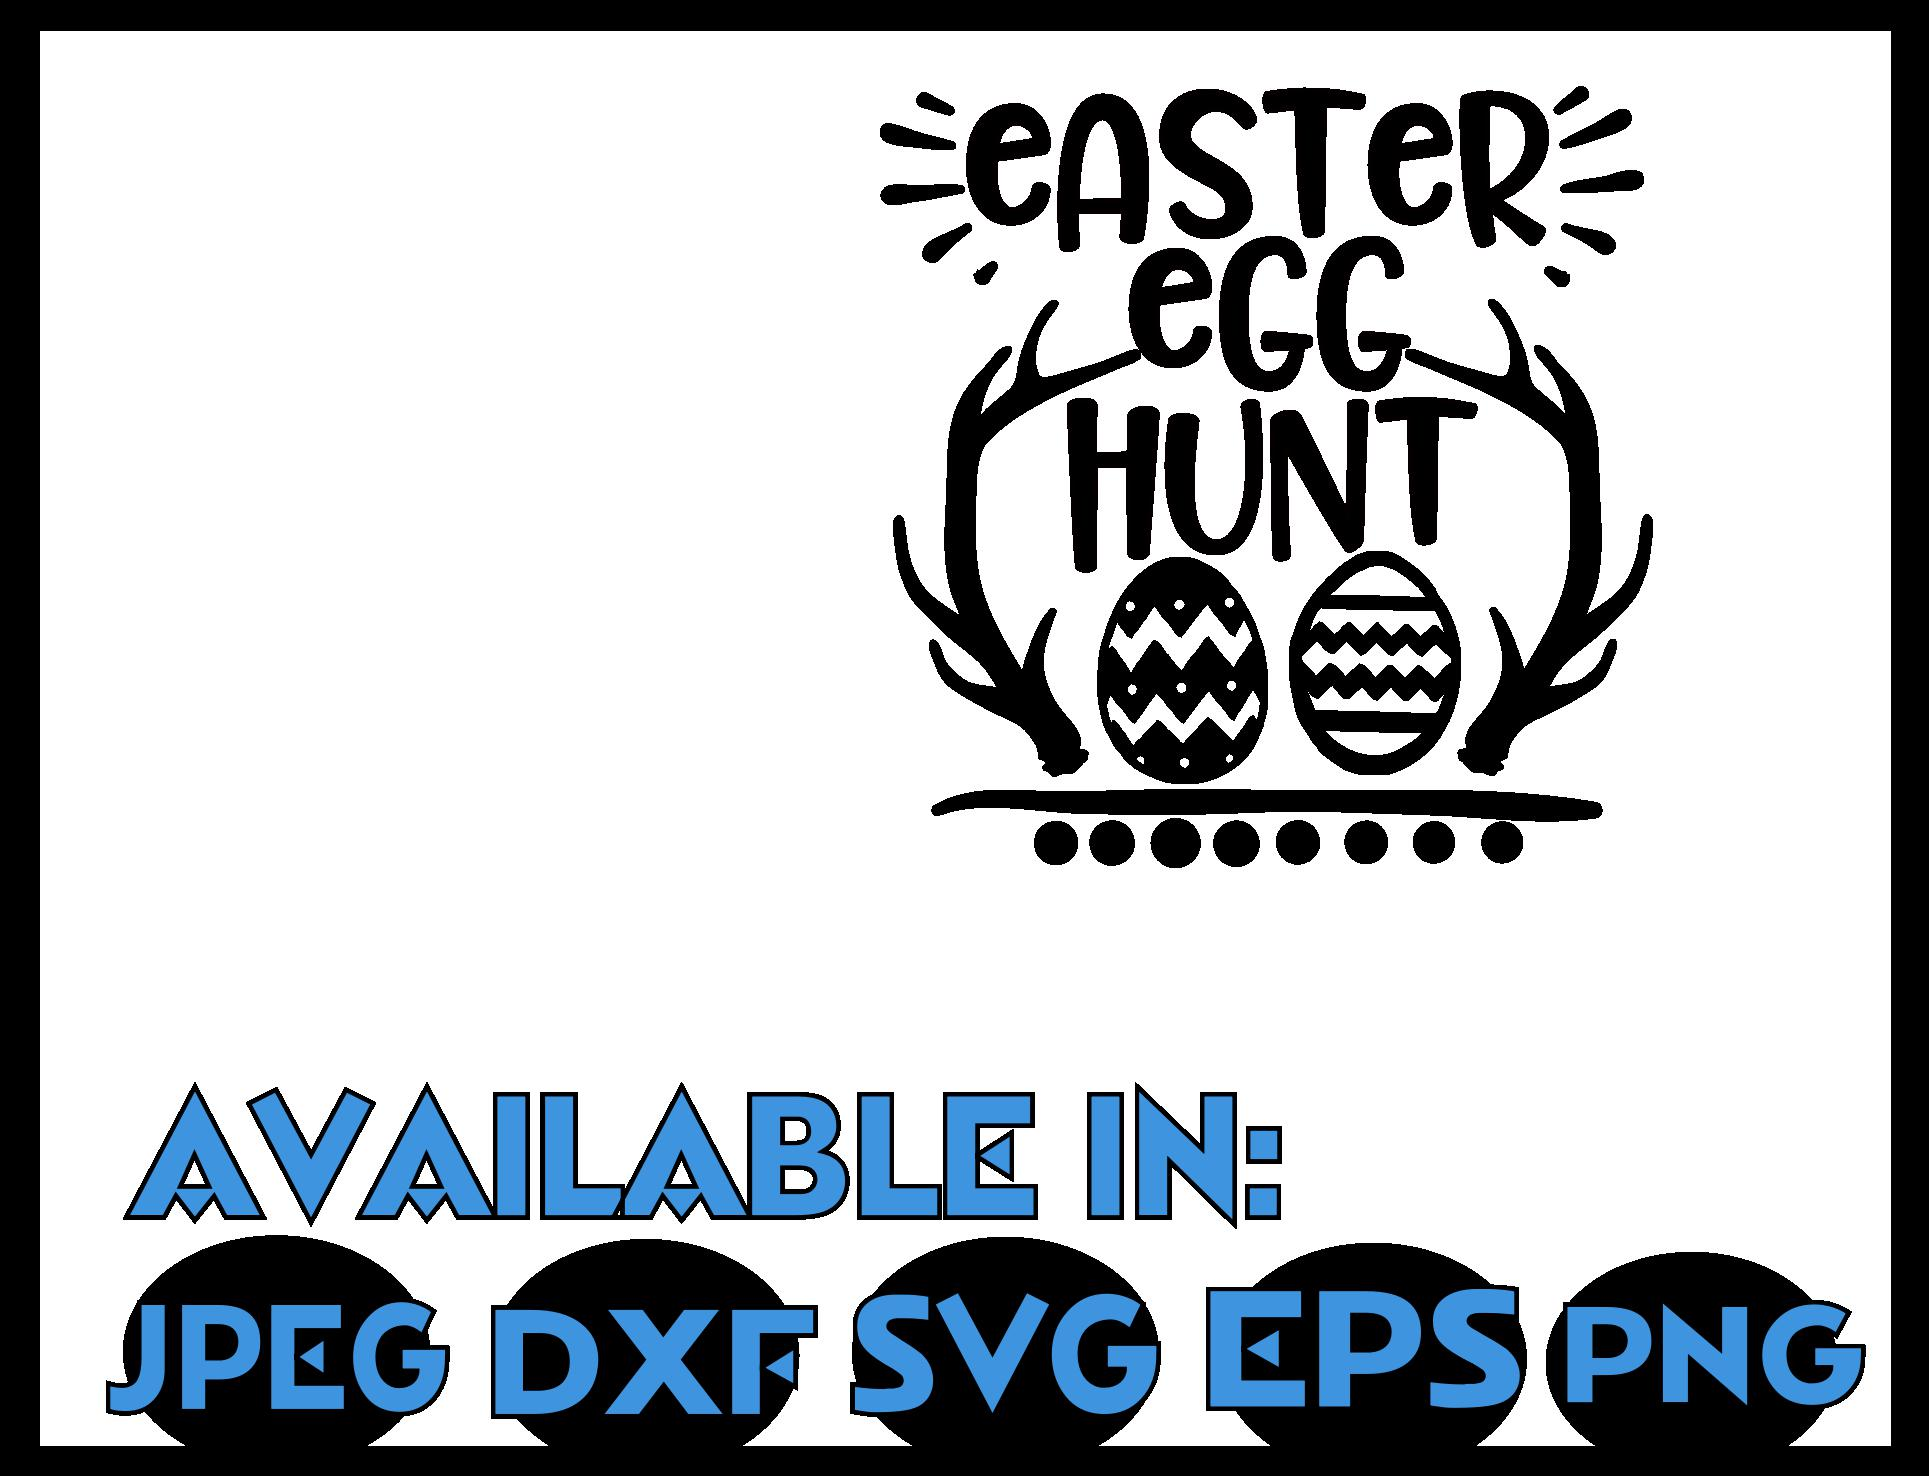 Happy Easter SVG DXF JPEG Silhouette Cameo Cricut Egg hunt example image 3